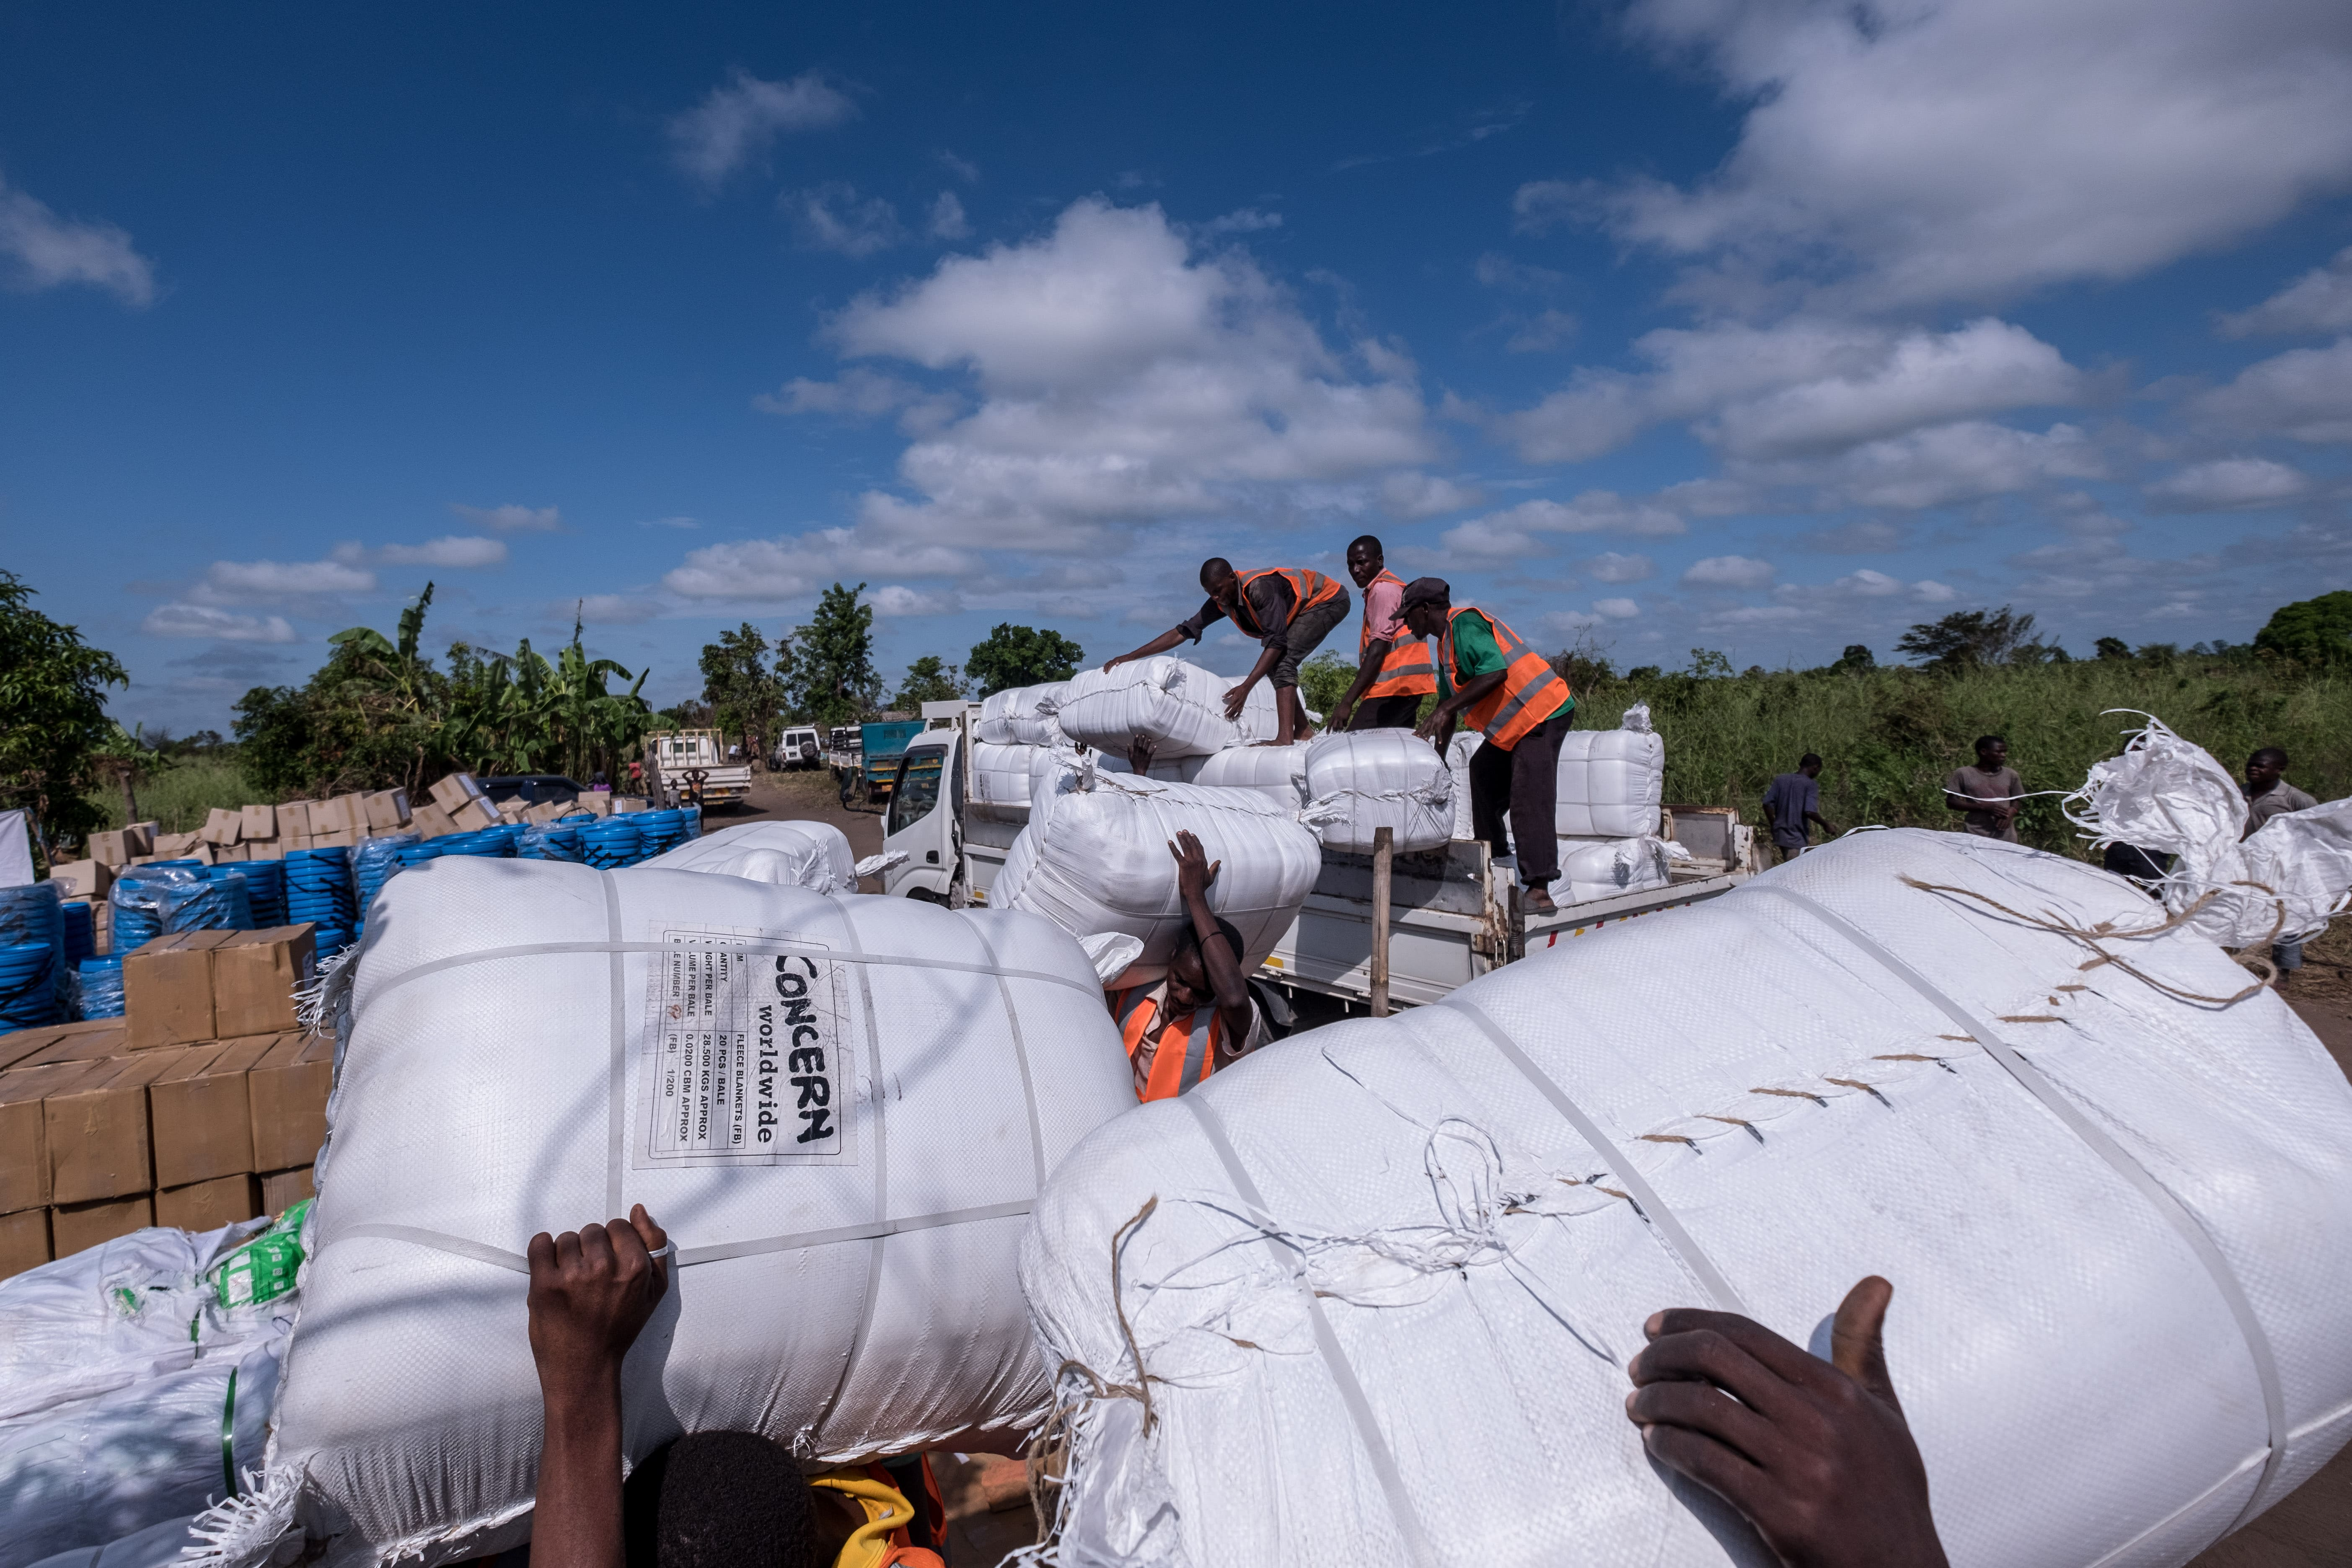 Workers unload bundles of blankets and bedding from a truck at a distribution in Ndeja, Mozambique